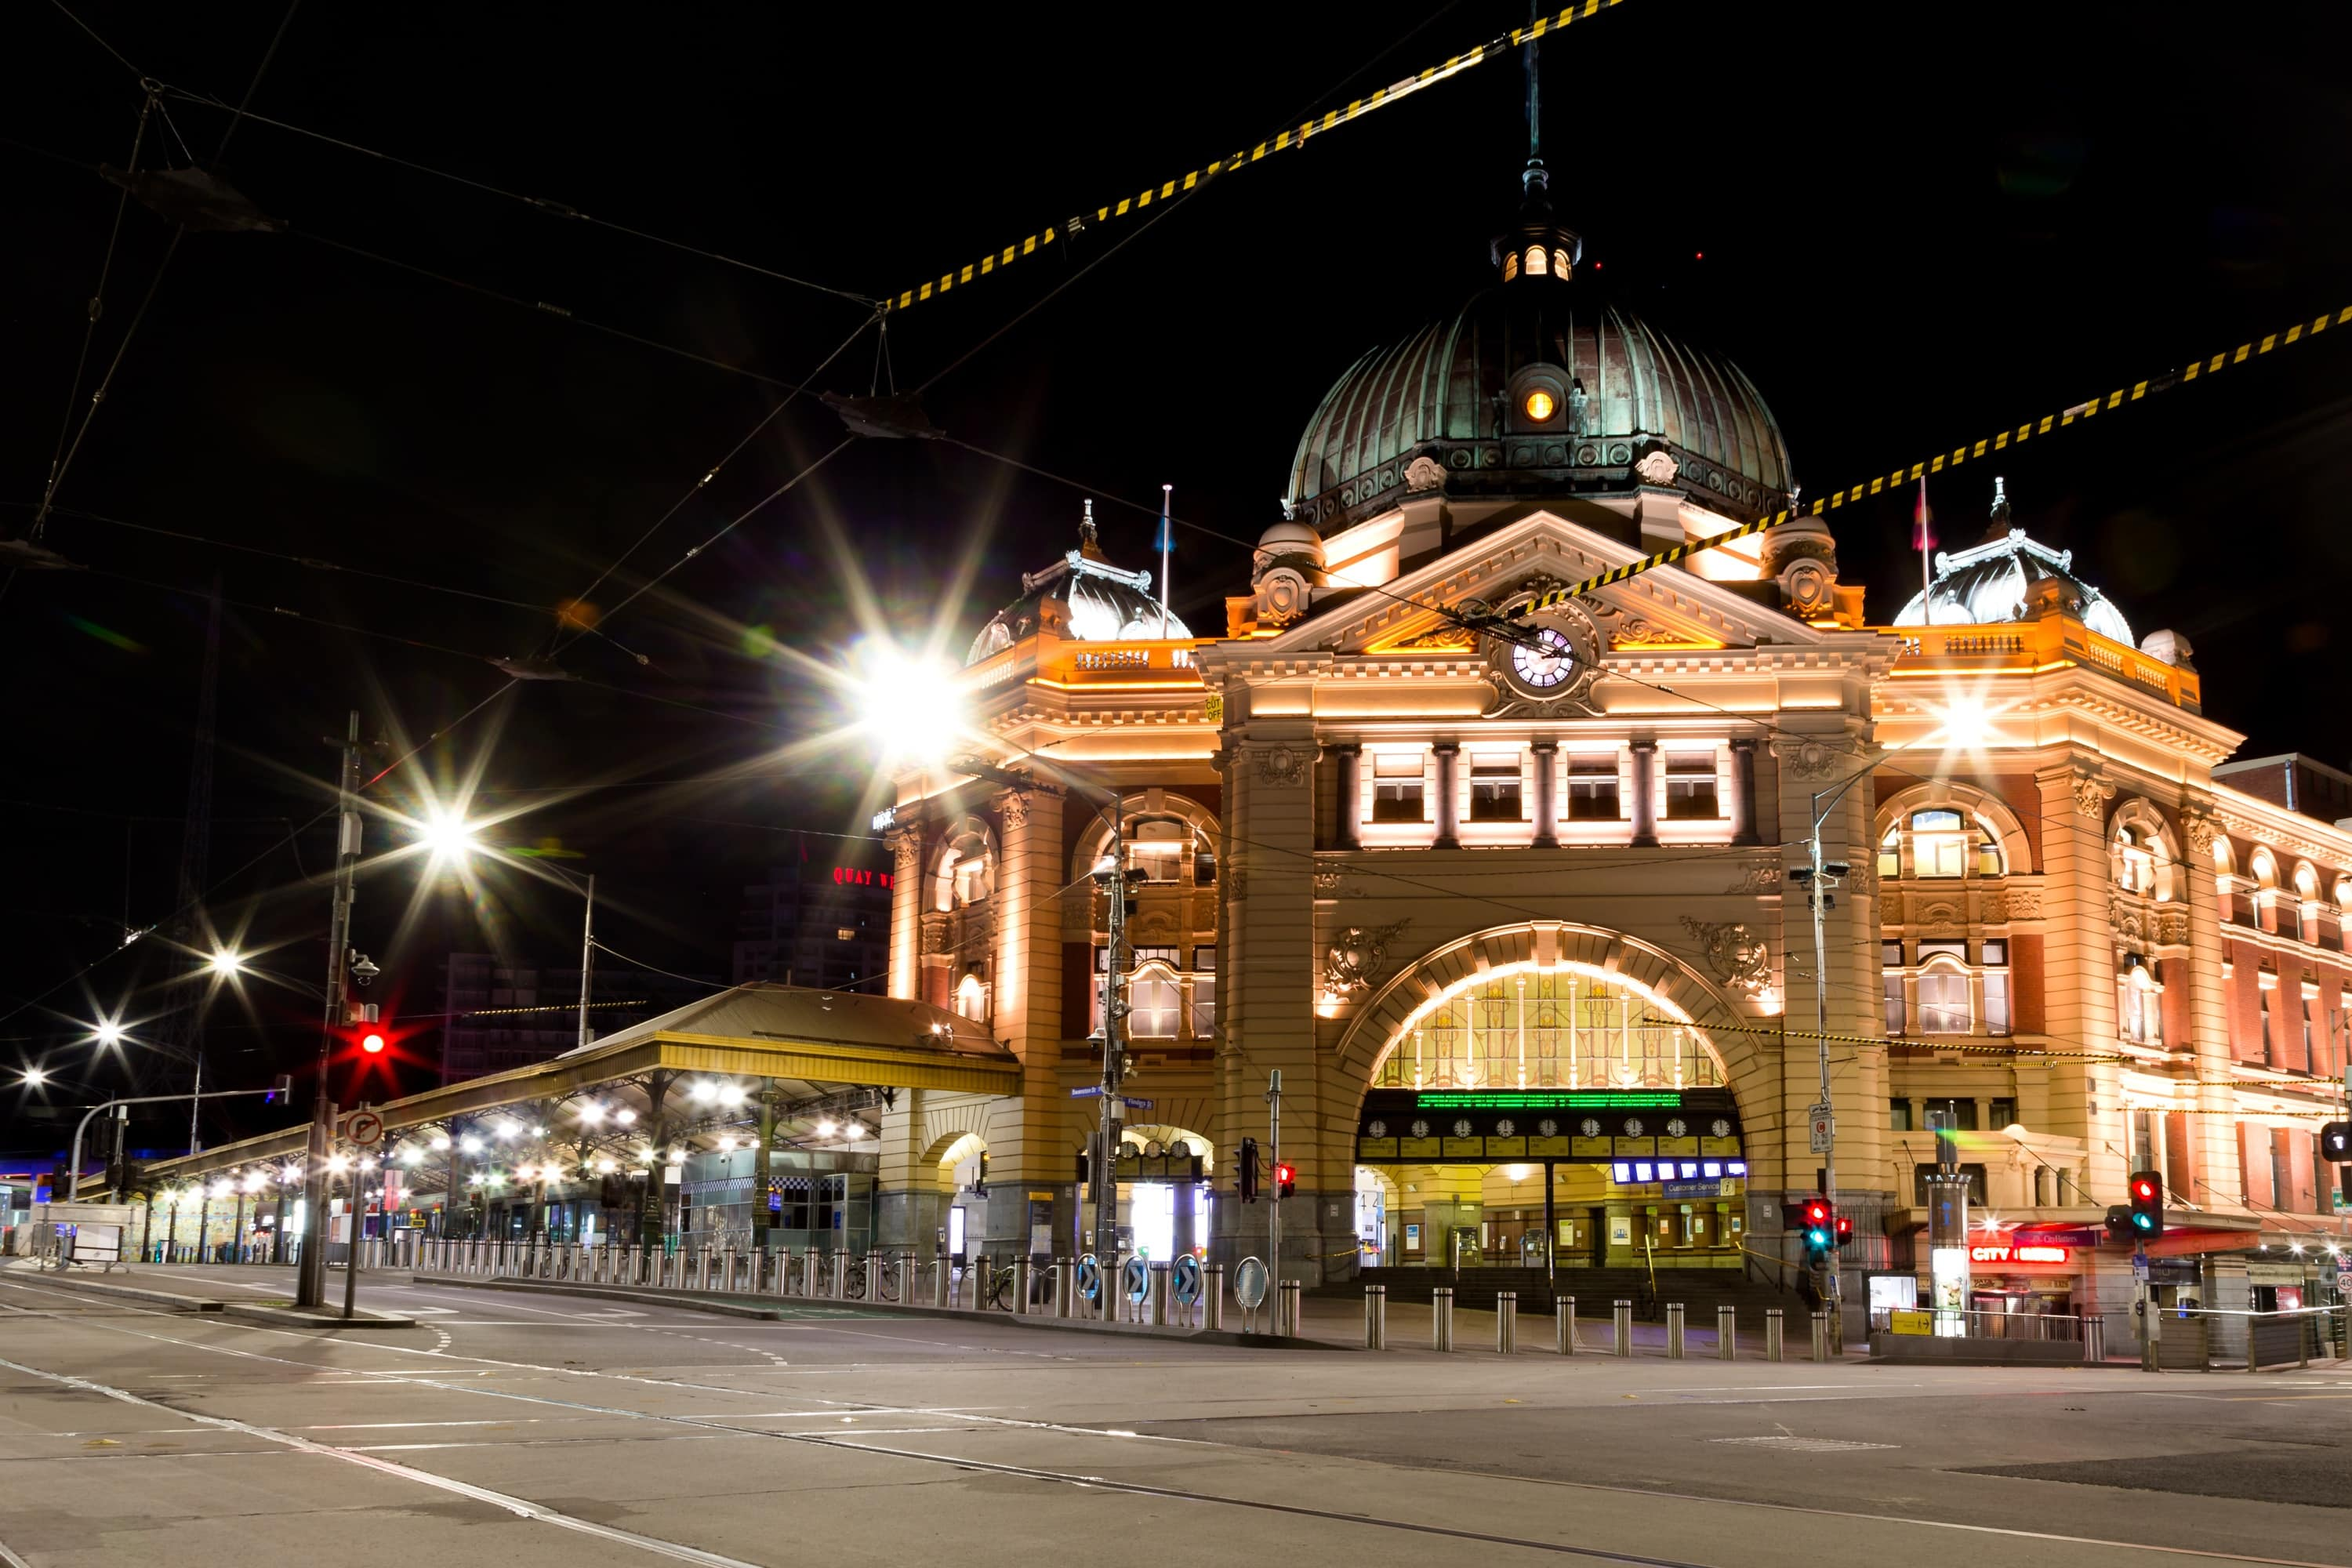 A view of Flinders Street Station under curfew during COVID-19 in Melbourne, Australia.  Opposition to Premier Daniel Andrews plans to extend Victoria's State of Emergency for another 12 months continues as he negotiates with Cross Benchers to pass the amendment. It comes as case numbers continue to fall.